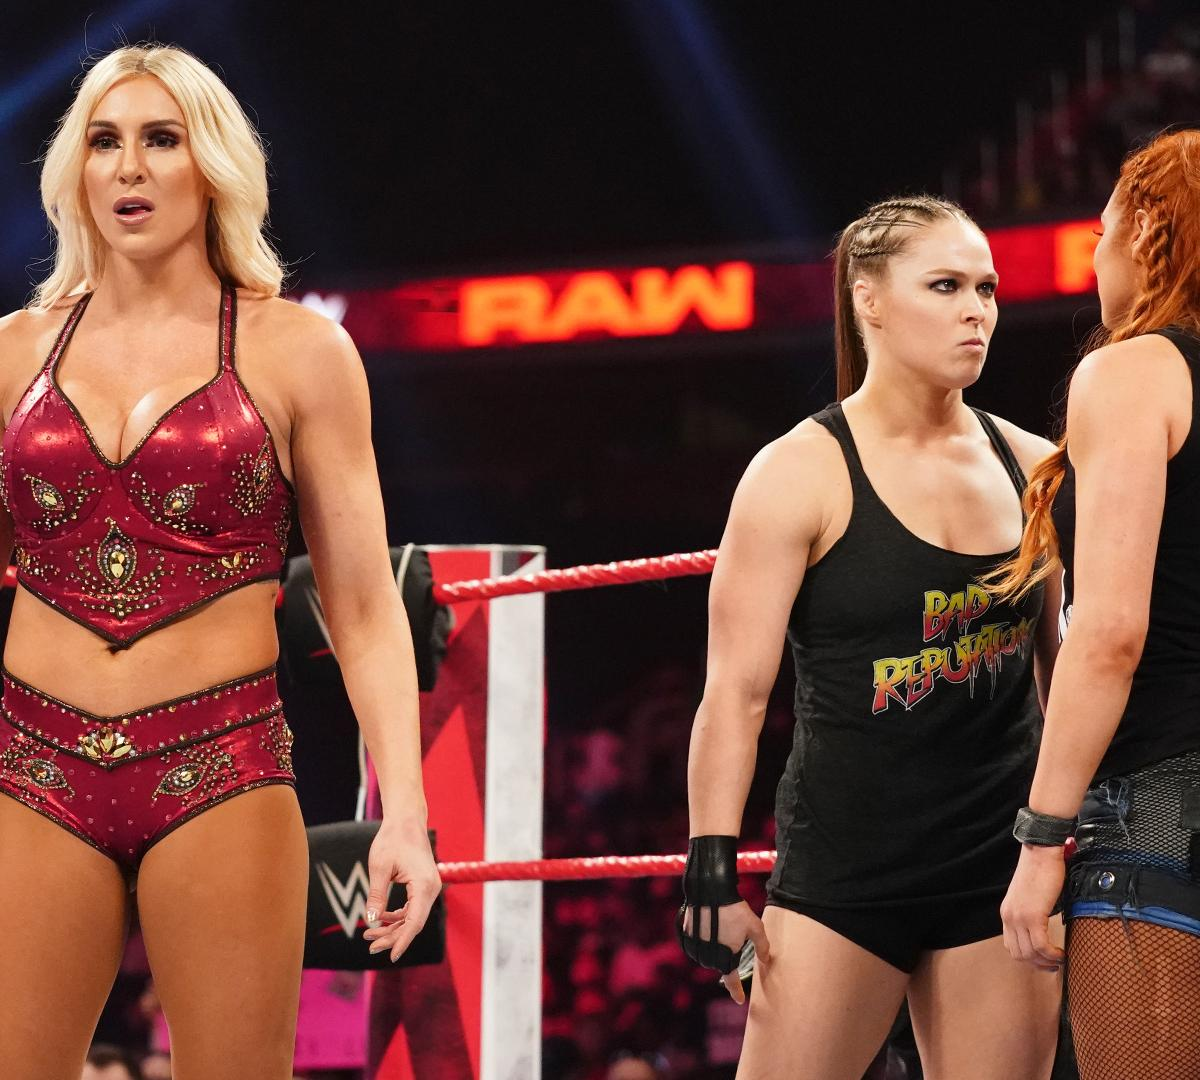 WWE News: Ronda Rousey takes a shot at WWE during ESPN